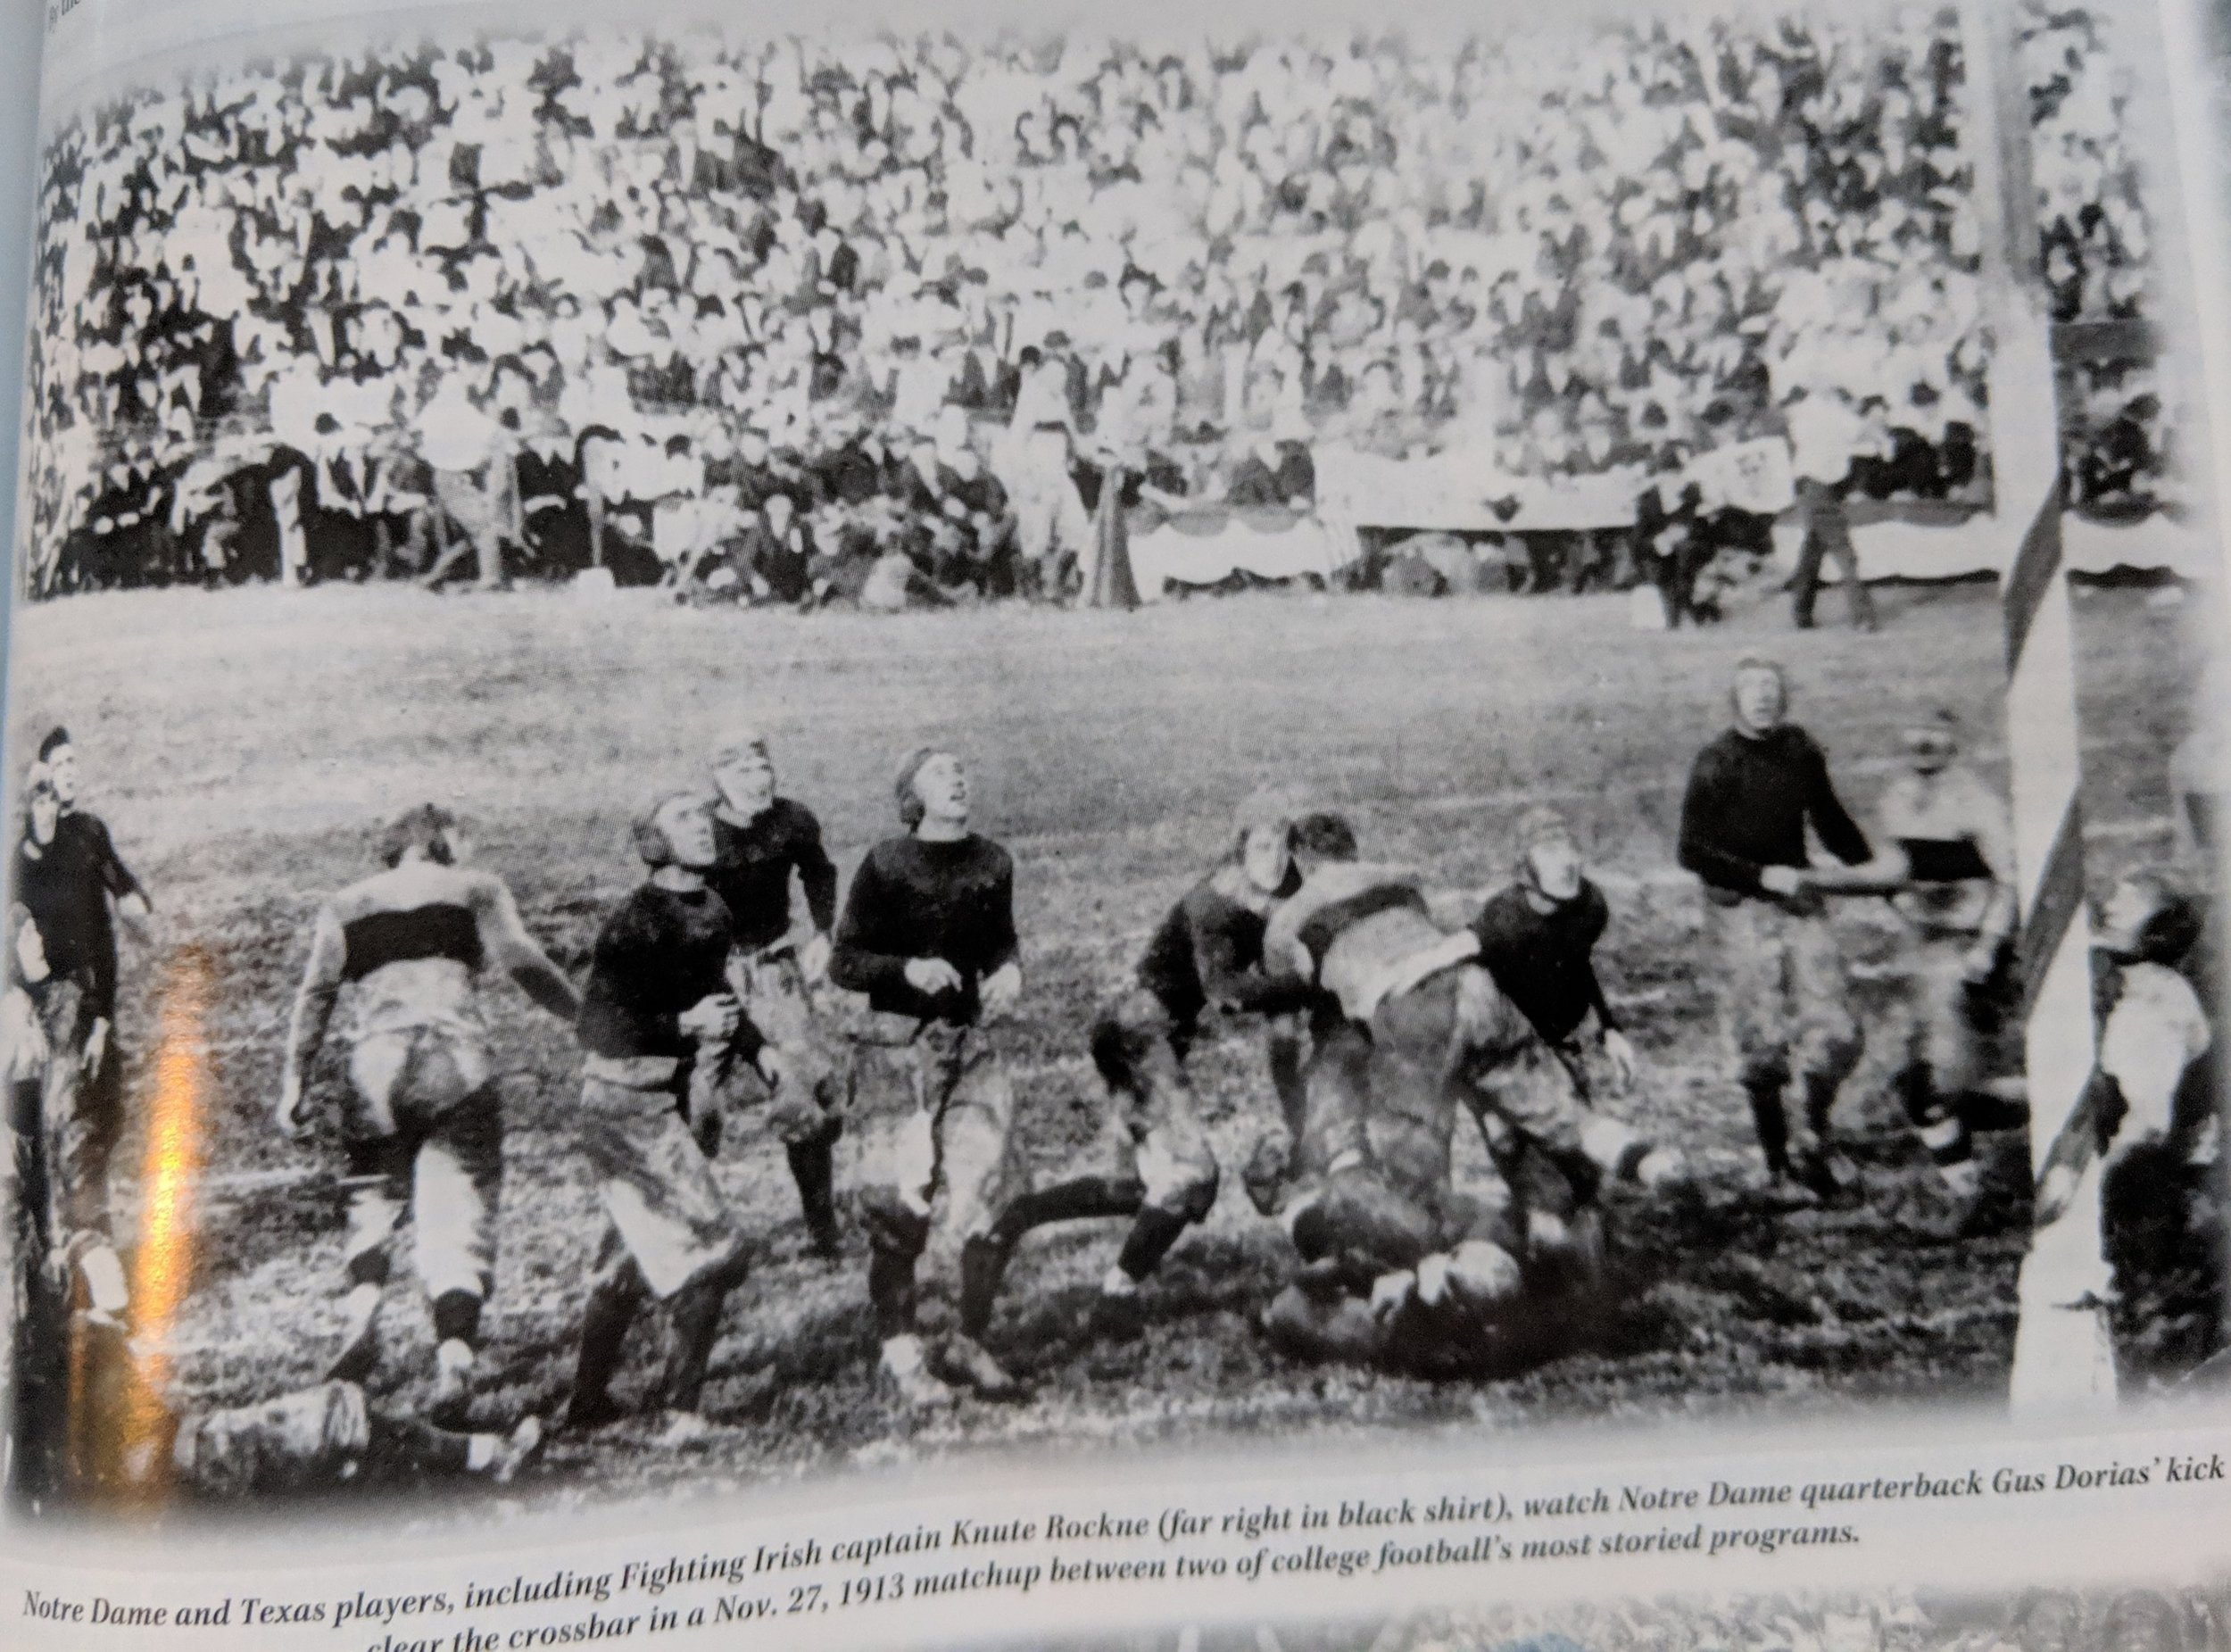 Knute Rockne is far right in black. Unfortunately, Clyde Littlefield the starting Longhorn quarterback is hurt and does not play against Notre Dame.